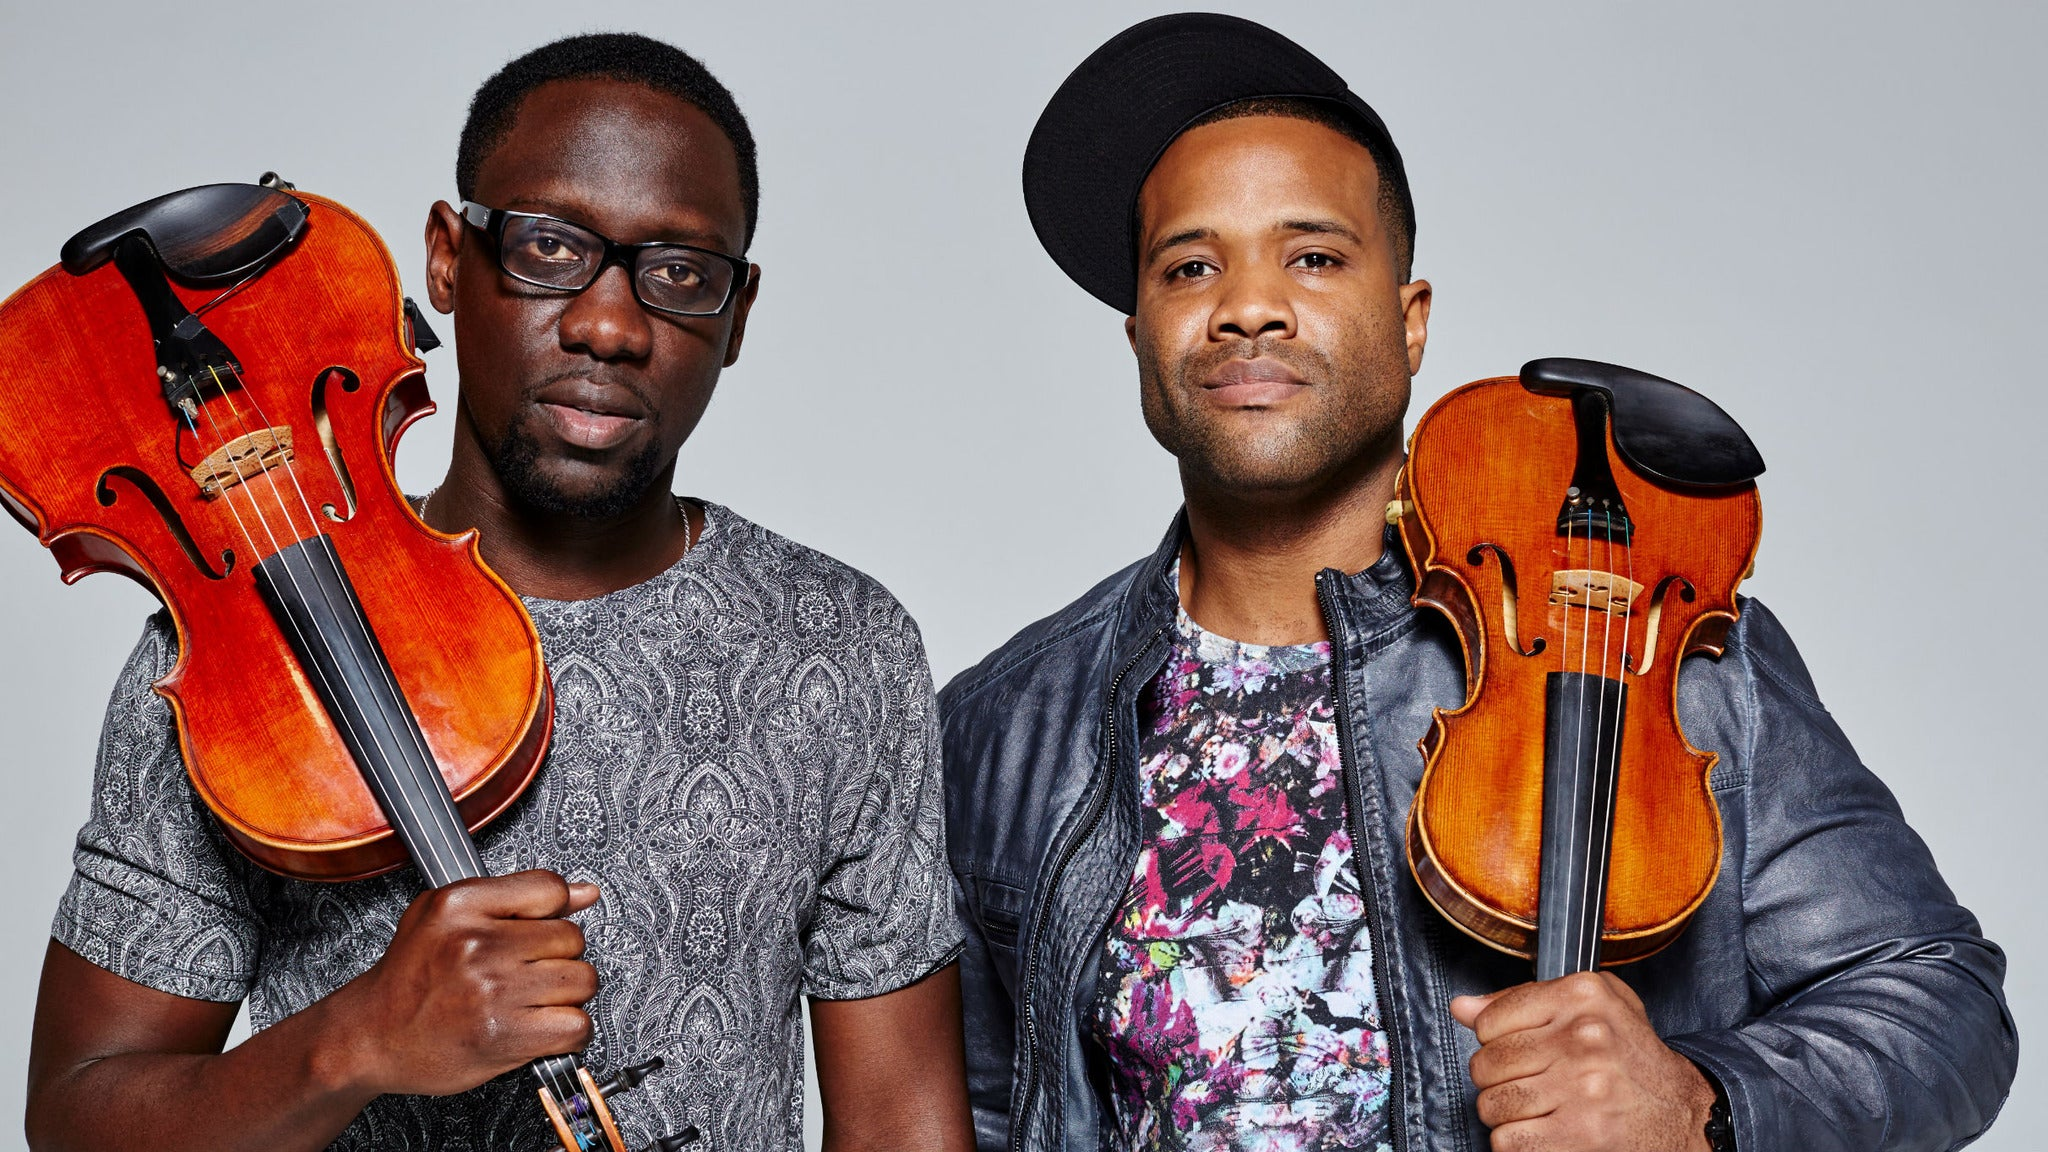 Black Violin at The Lyric Theatre